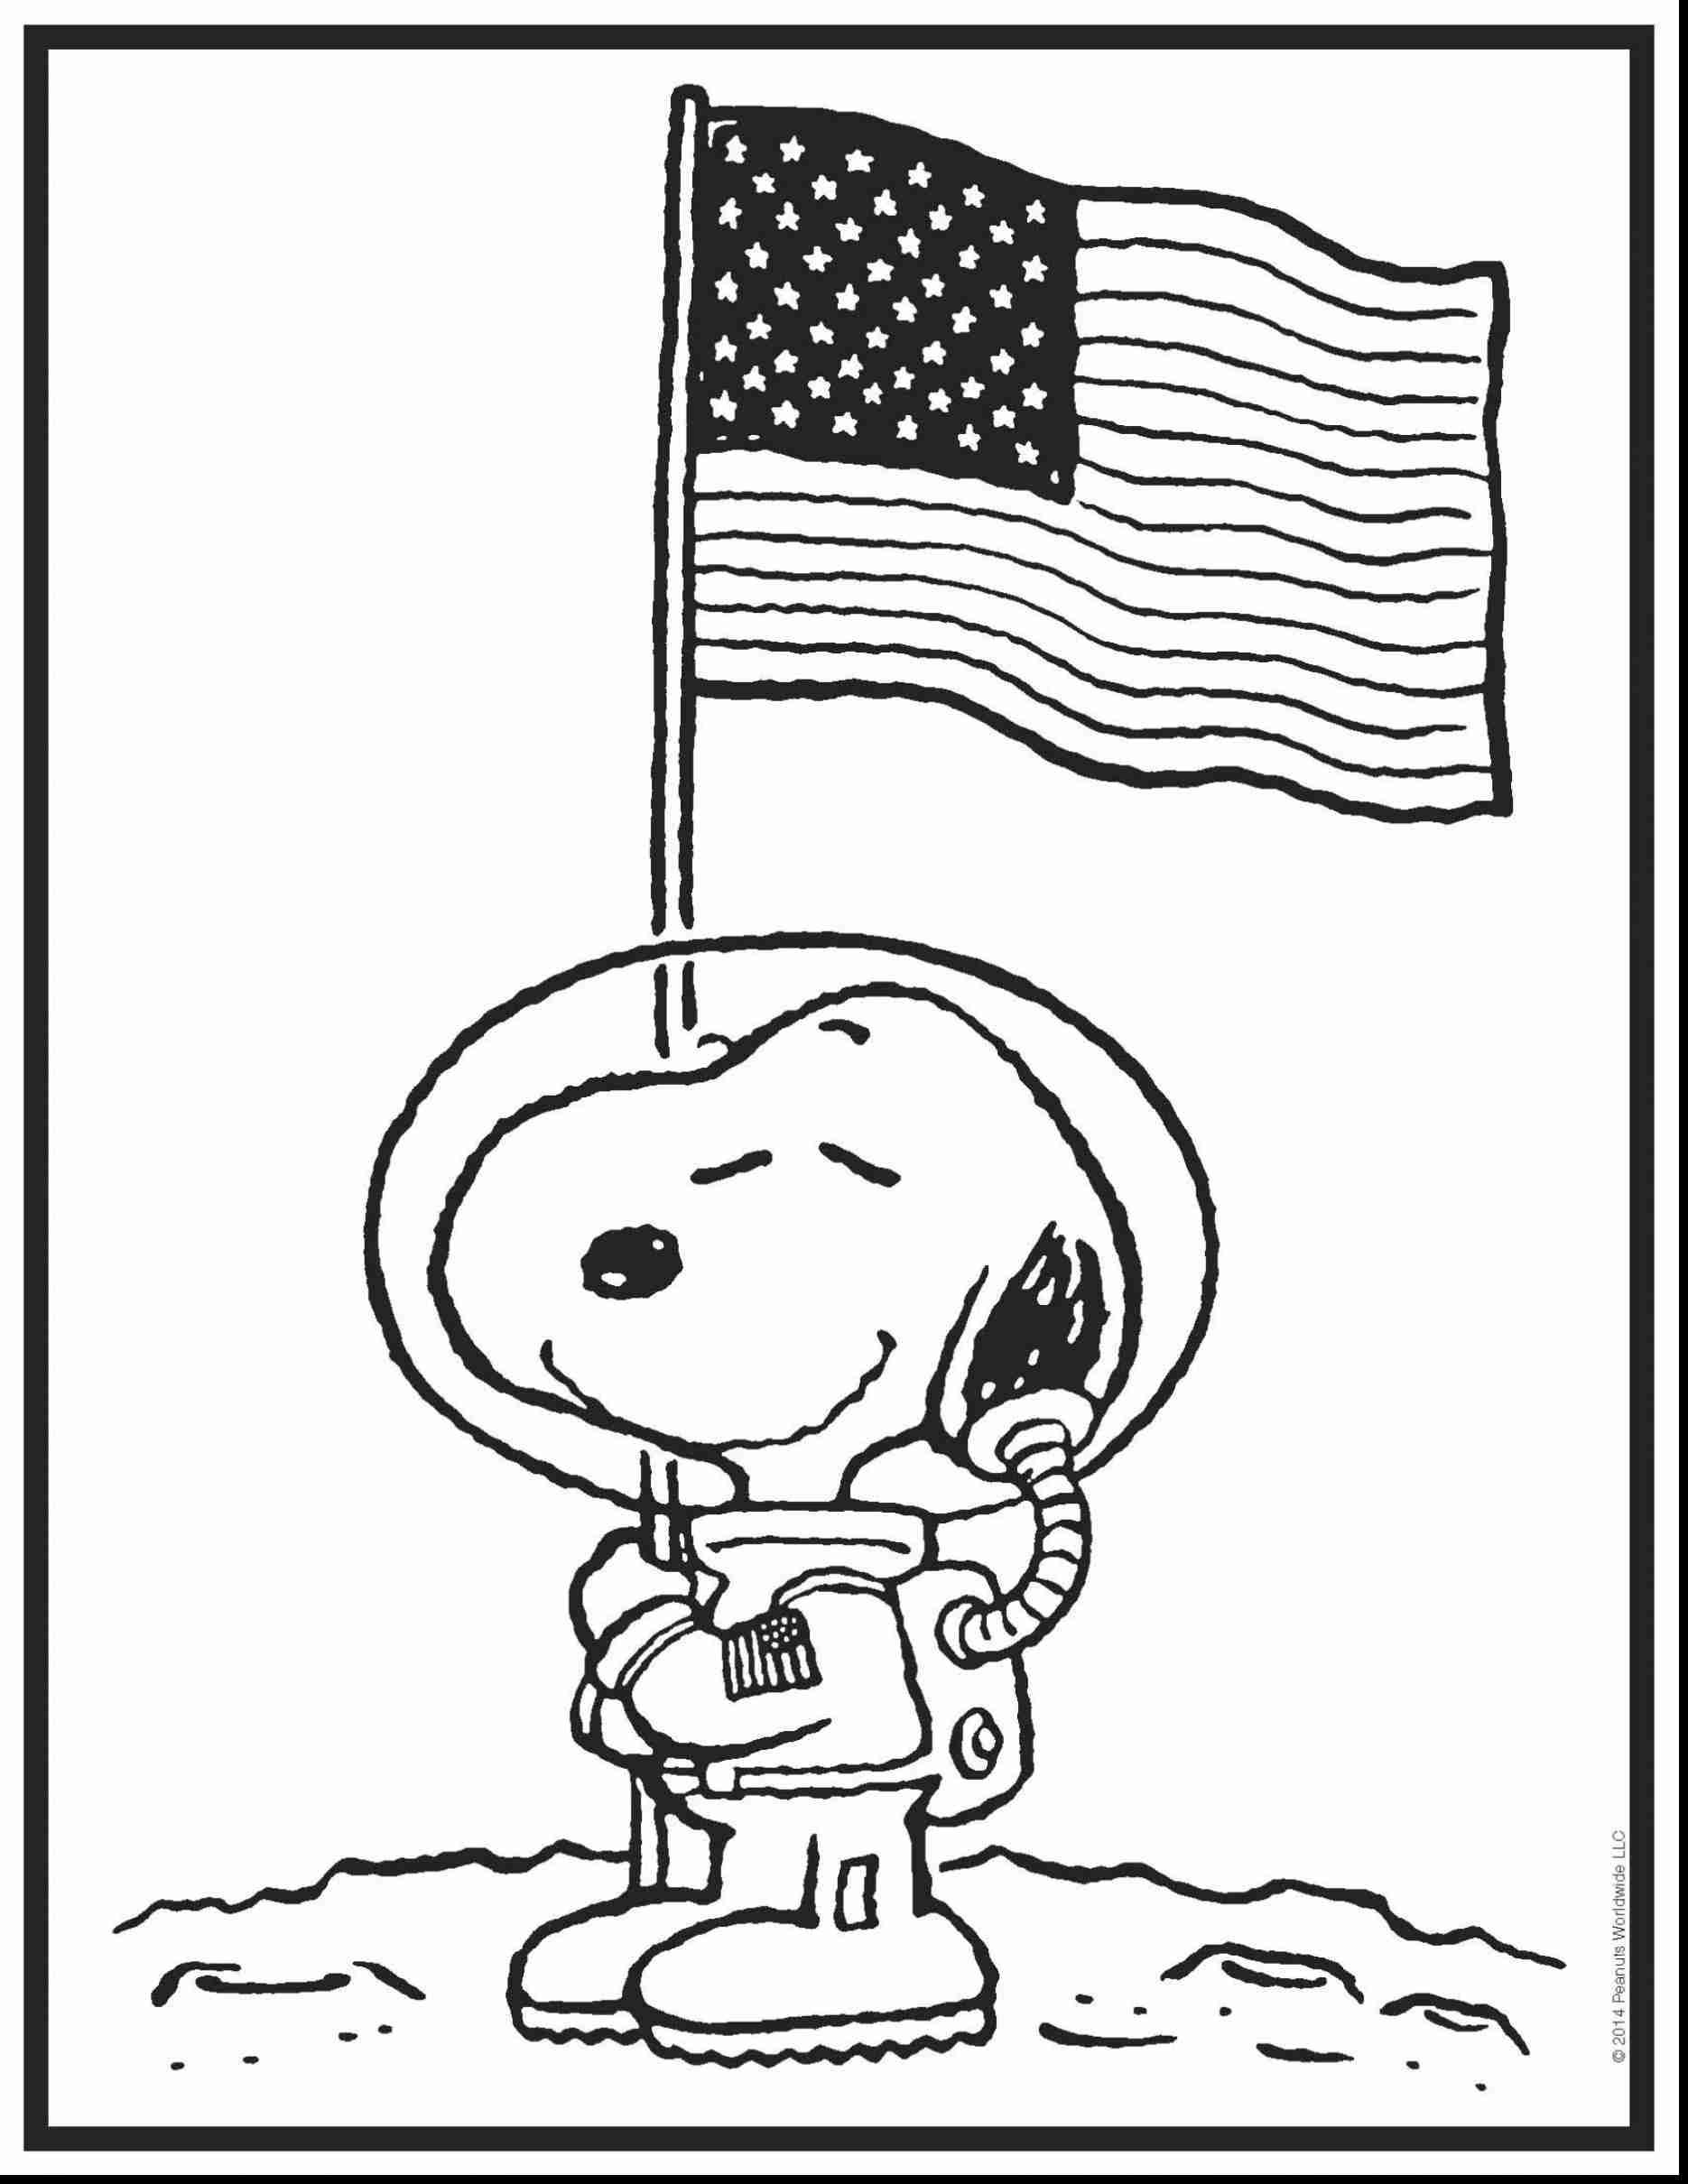 Snoopy And Woodstock Coloring Pages Coloring Ideas Snoopy Coloring Pages Tingameday Com Ideas And